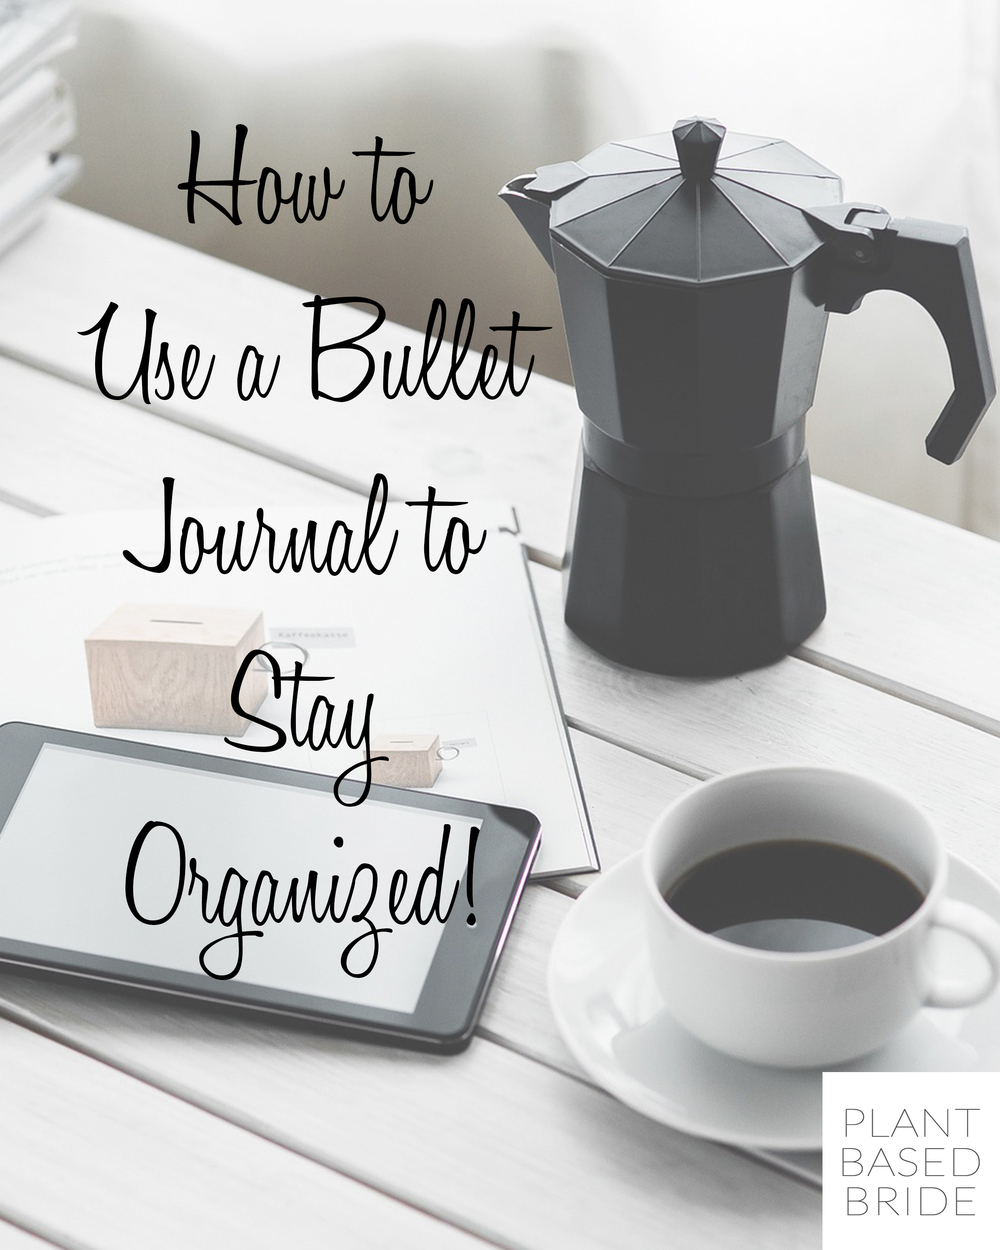 How to Use a Bullet Journal to Stay Organized from Plant Based Bride